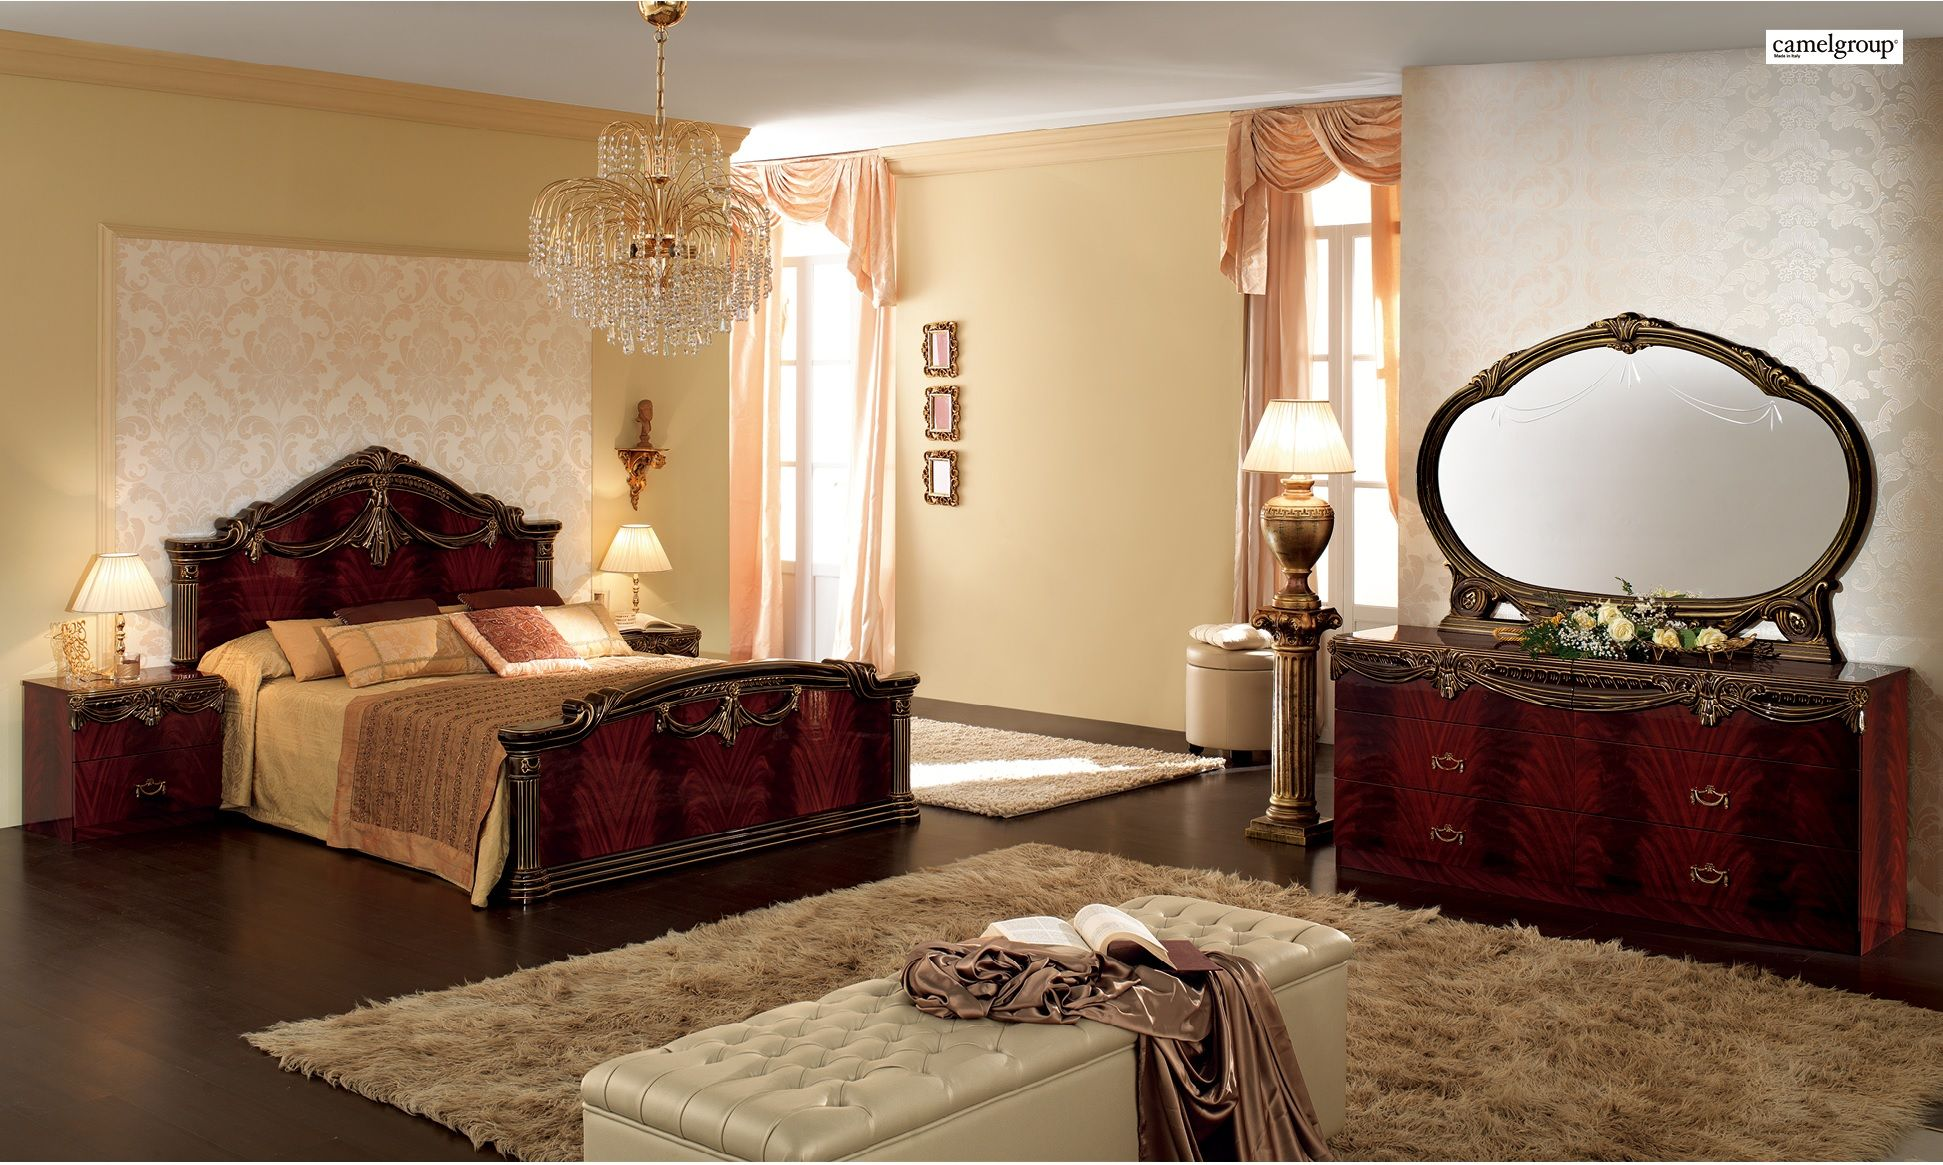 italian lacquer furniture. Luxor Bedroom Set In Mahogany Lacquer Finish By Camelgroup, Made Italy Https:/ Italian Furniture